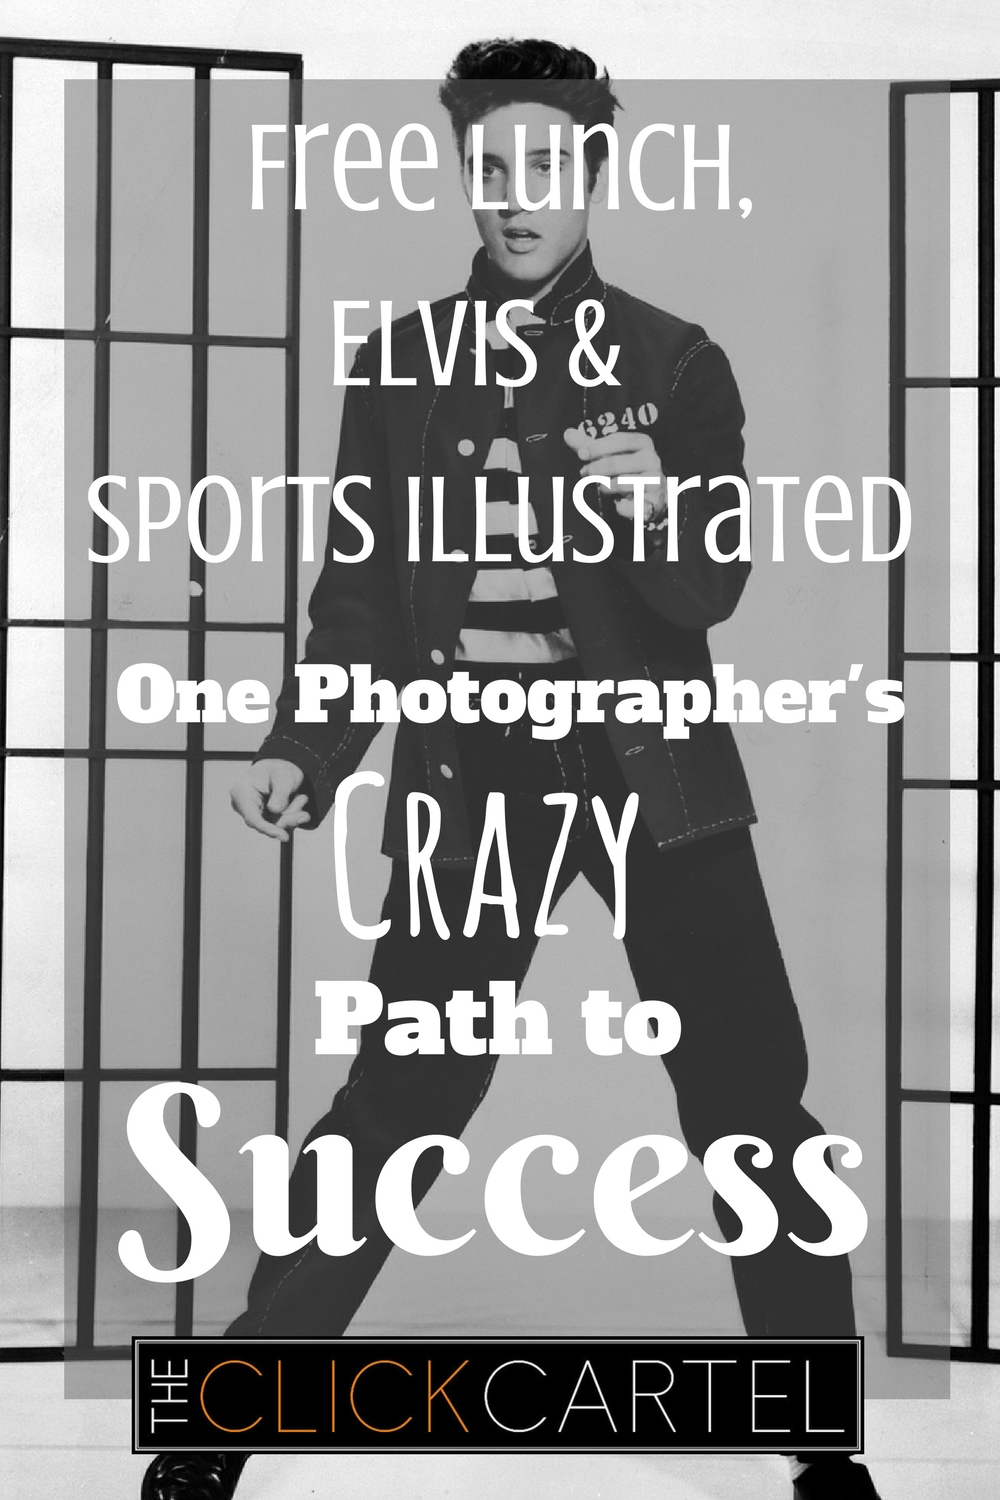 Free Lunch, Elvis & Sports Illustrated, One Photographer's Crazy Path to Success